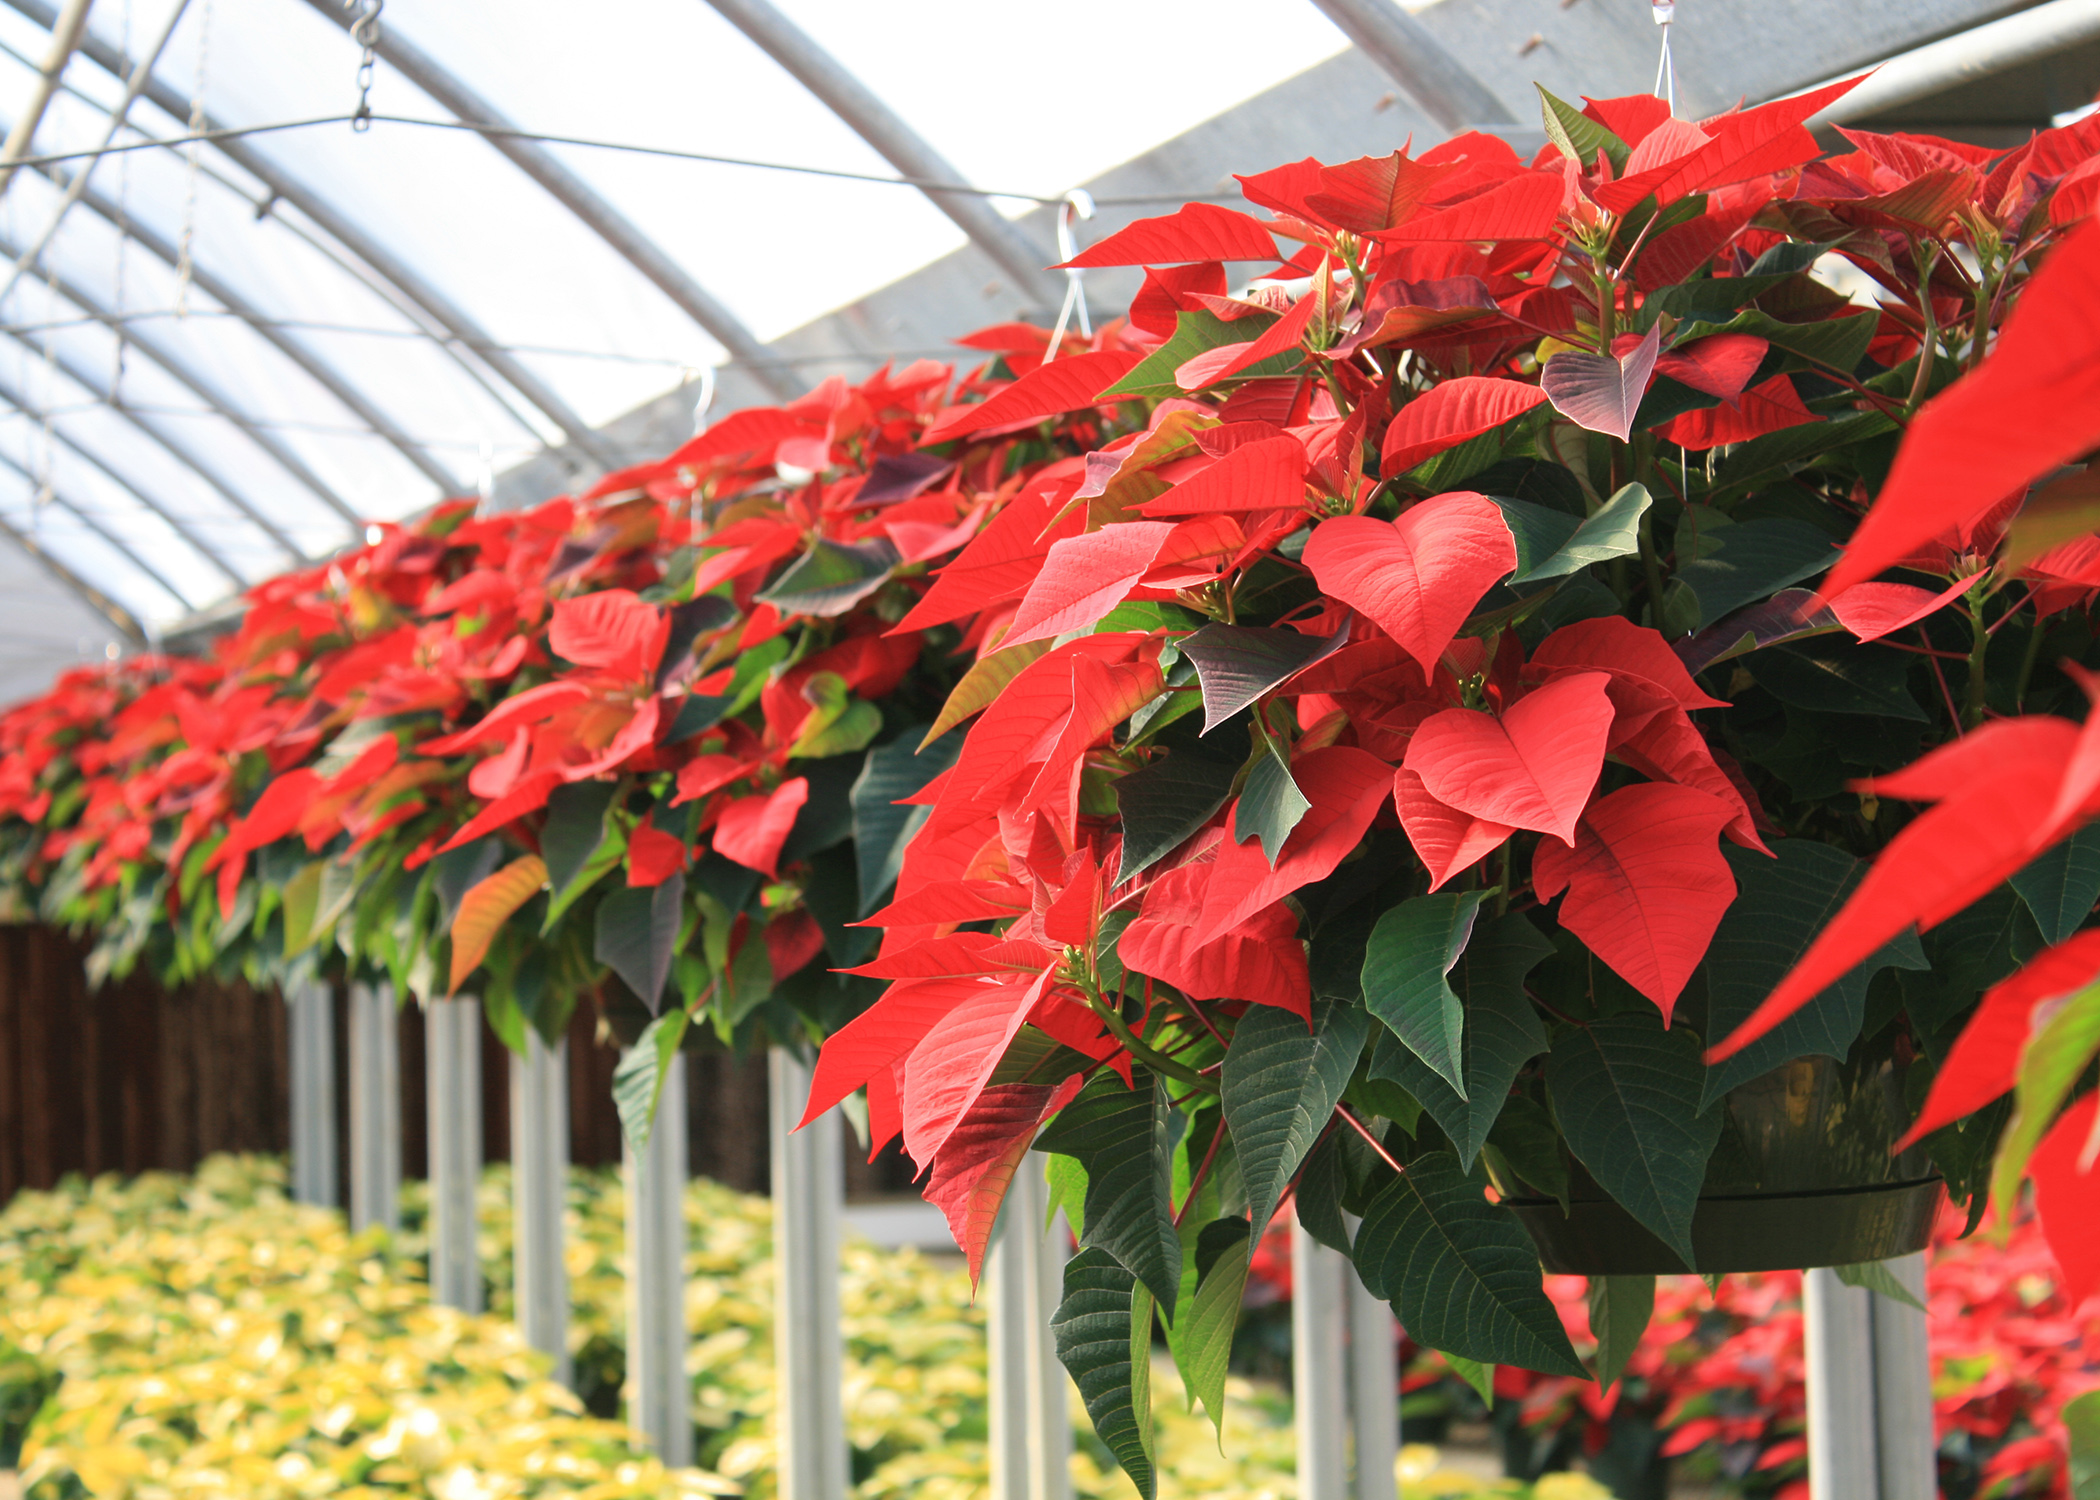 The appearance of poinsettias means we are in the full swing of the Christmas season. (Photo by MSU Extension/Gary Bachman)